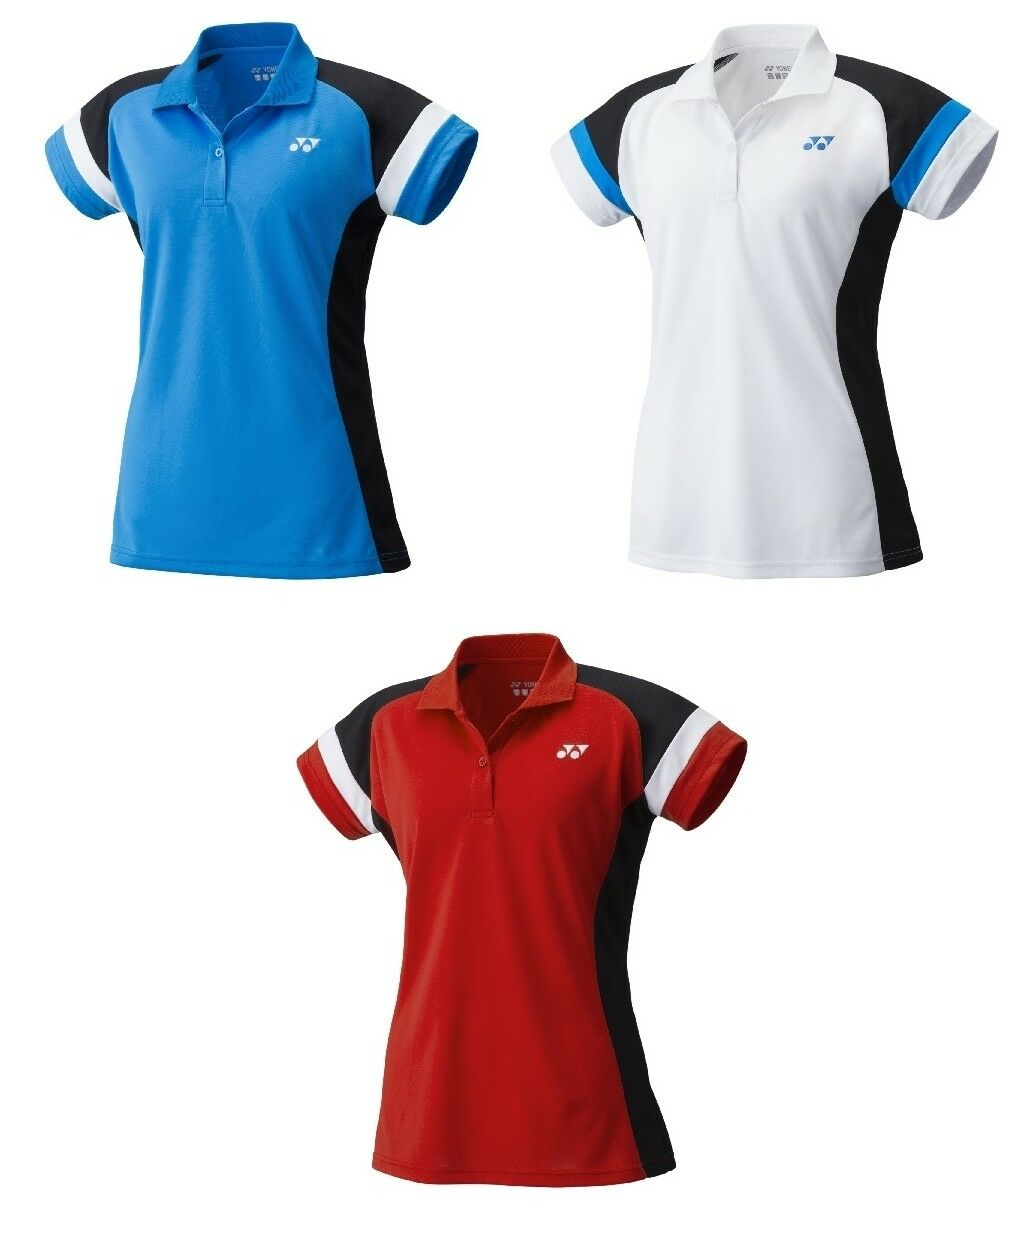 Table Tennis Femmes Yonex Polo Yw0002 De Badminton FcTKJl13